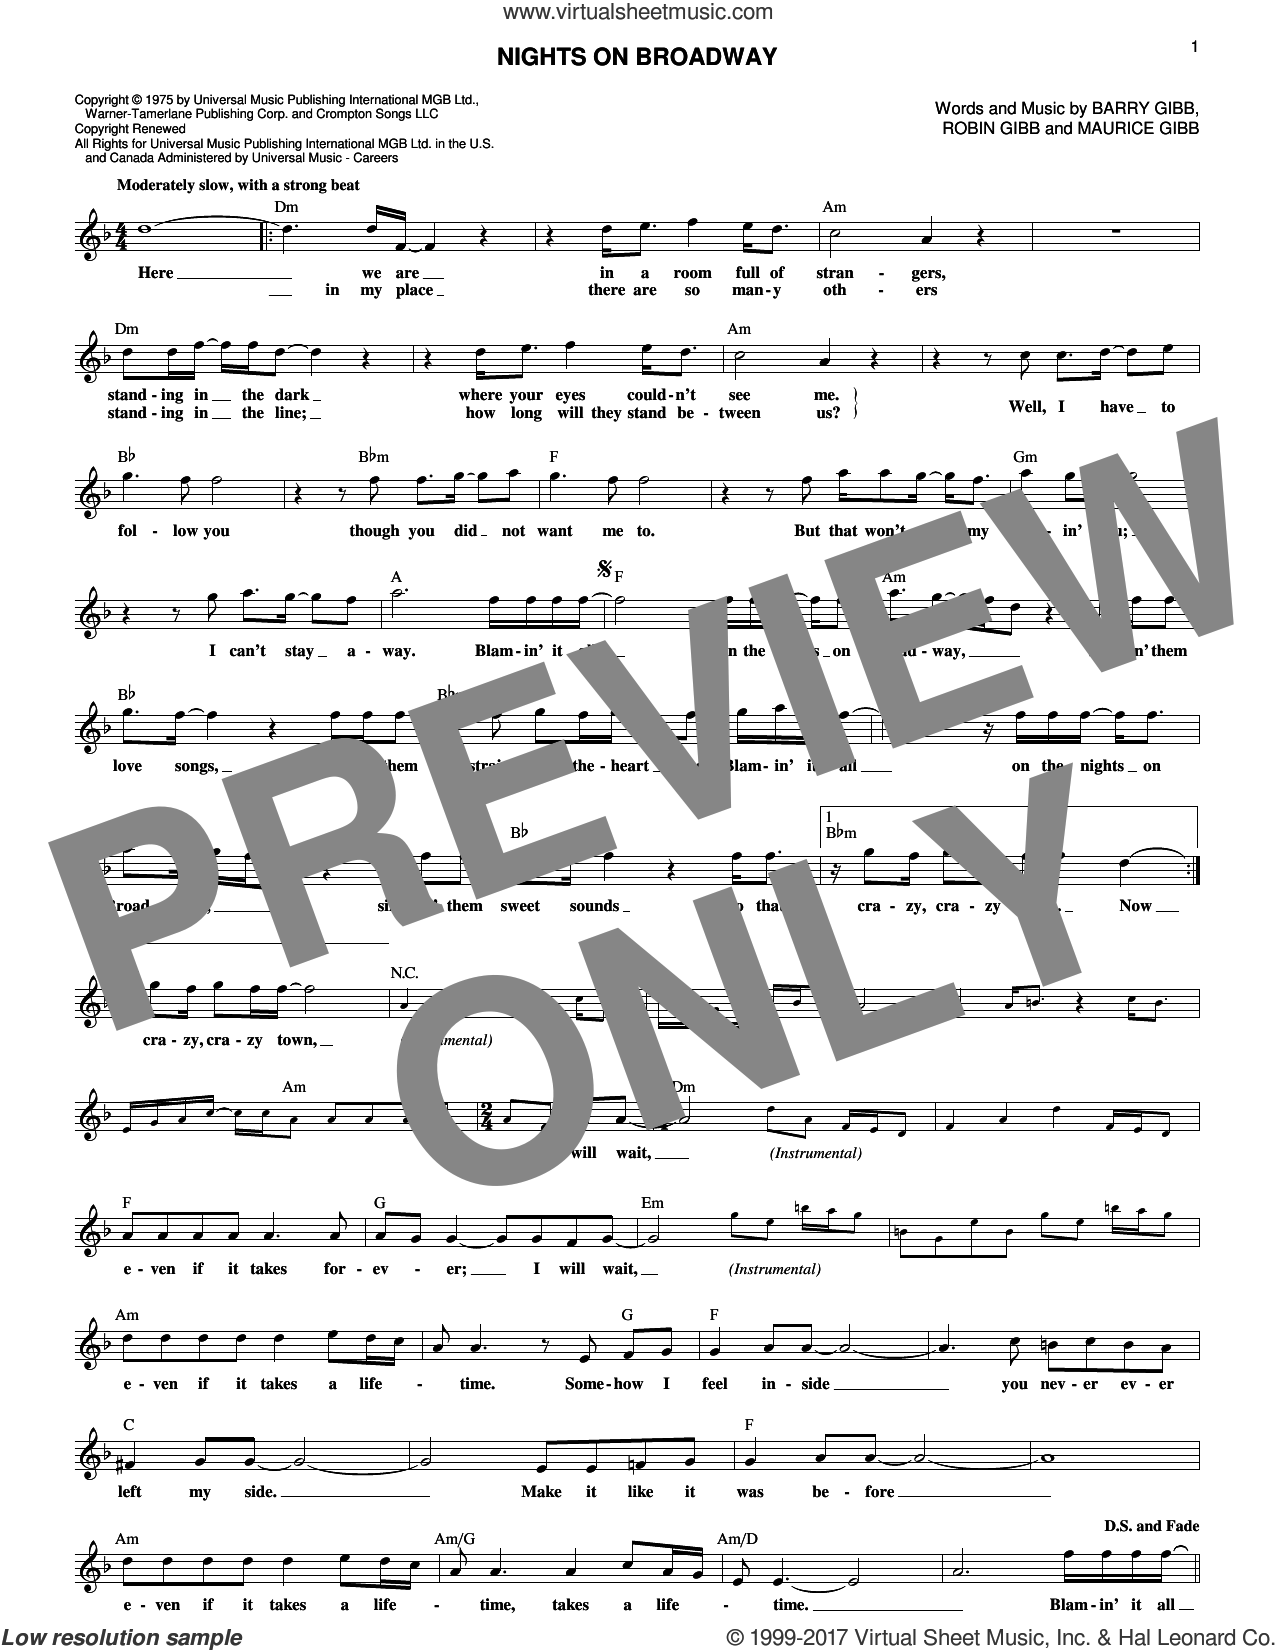 Nights On Broadway sheet music for voice and other instruments (fake book) by Bee Gees, Barry Gibb, Maurice Gibb and Robin Gibb, intermediate skill level